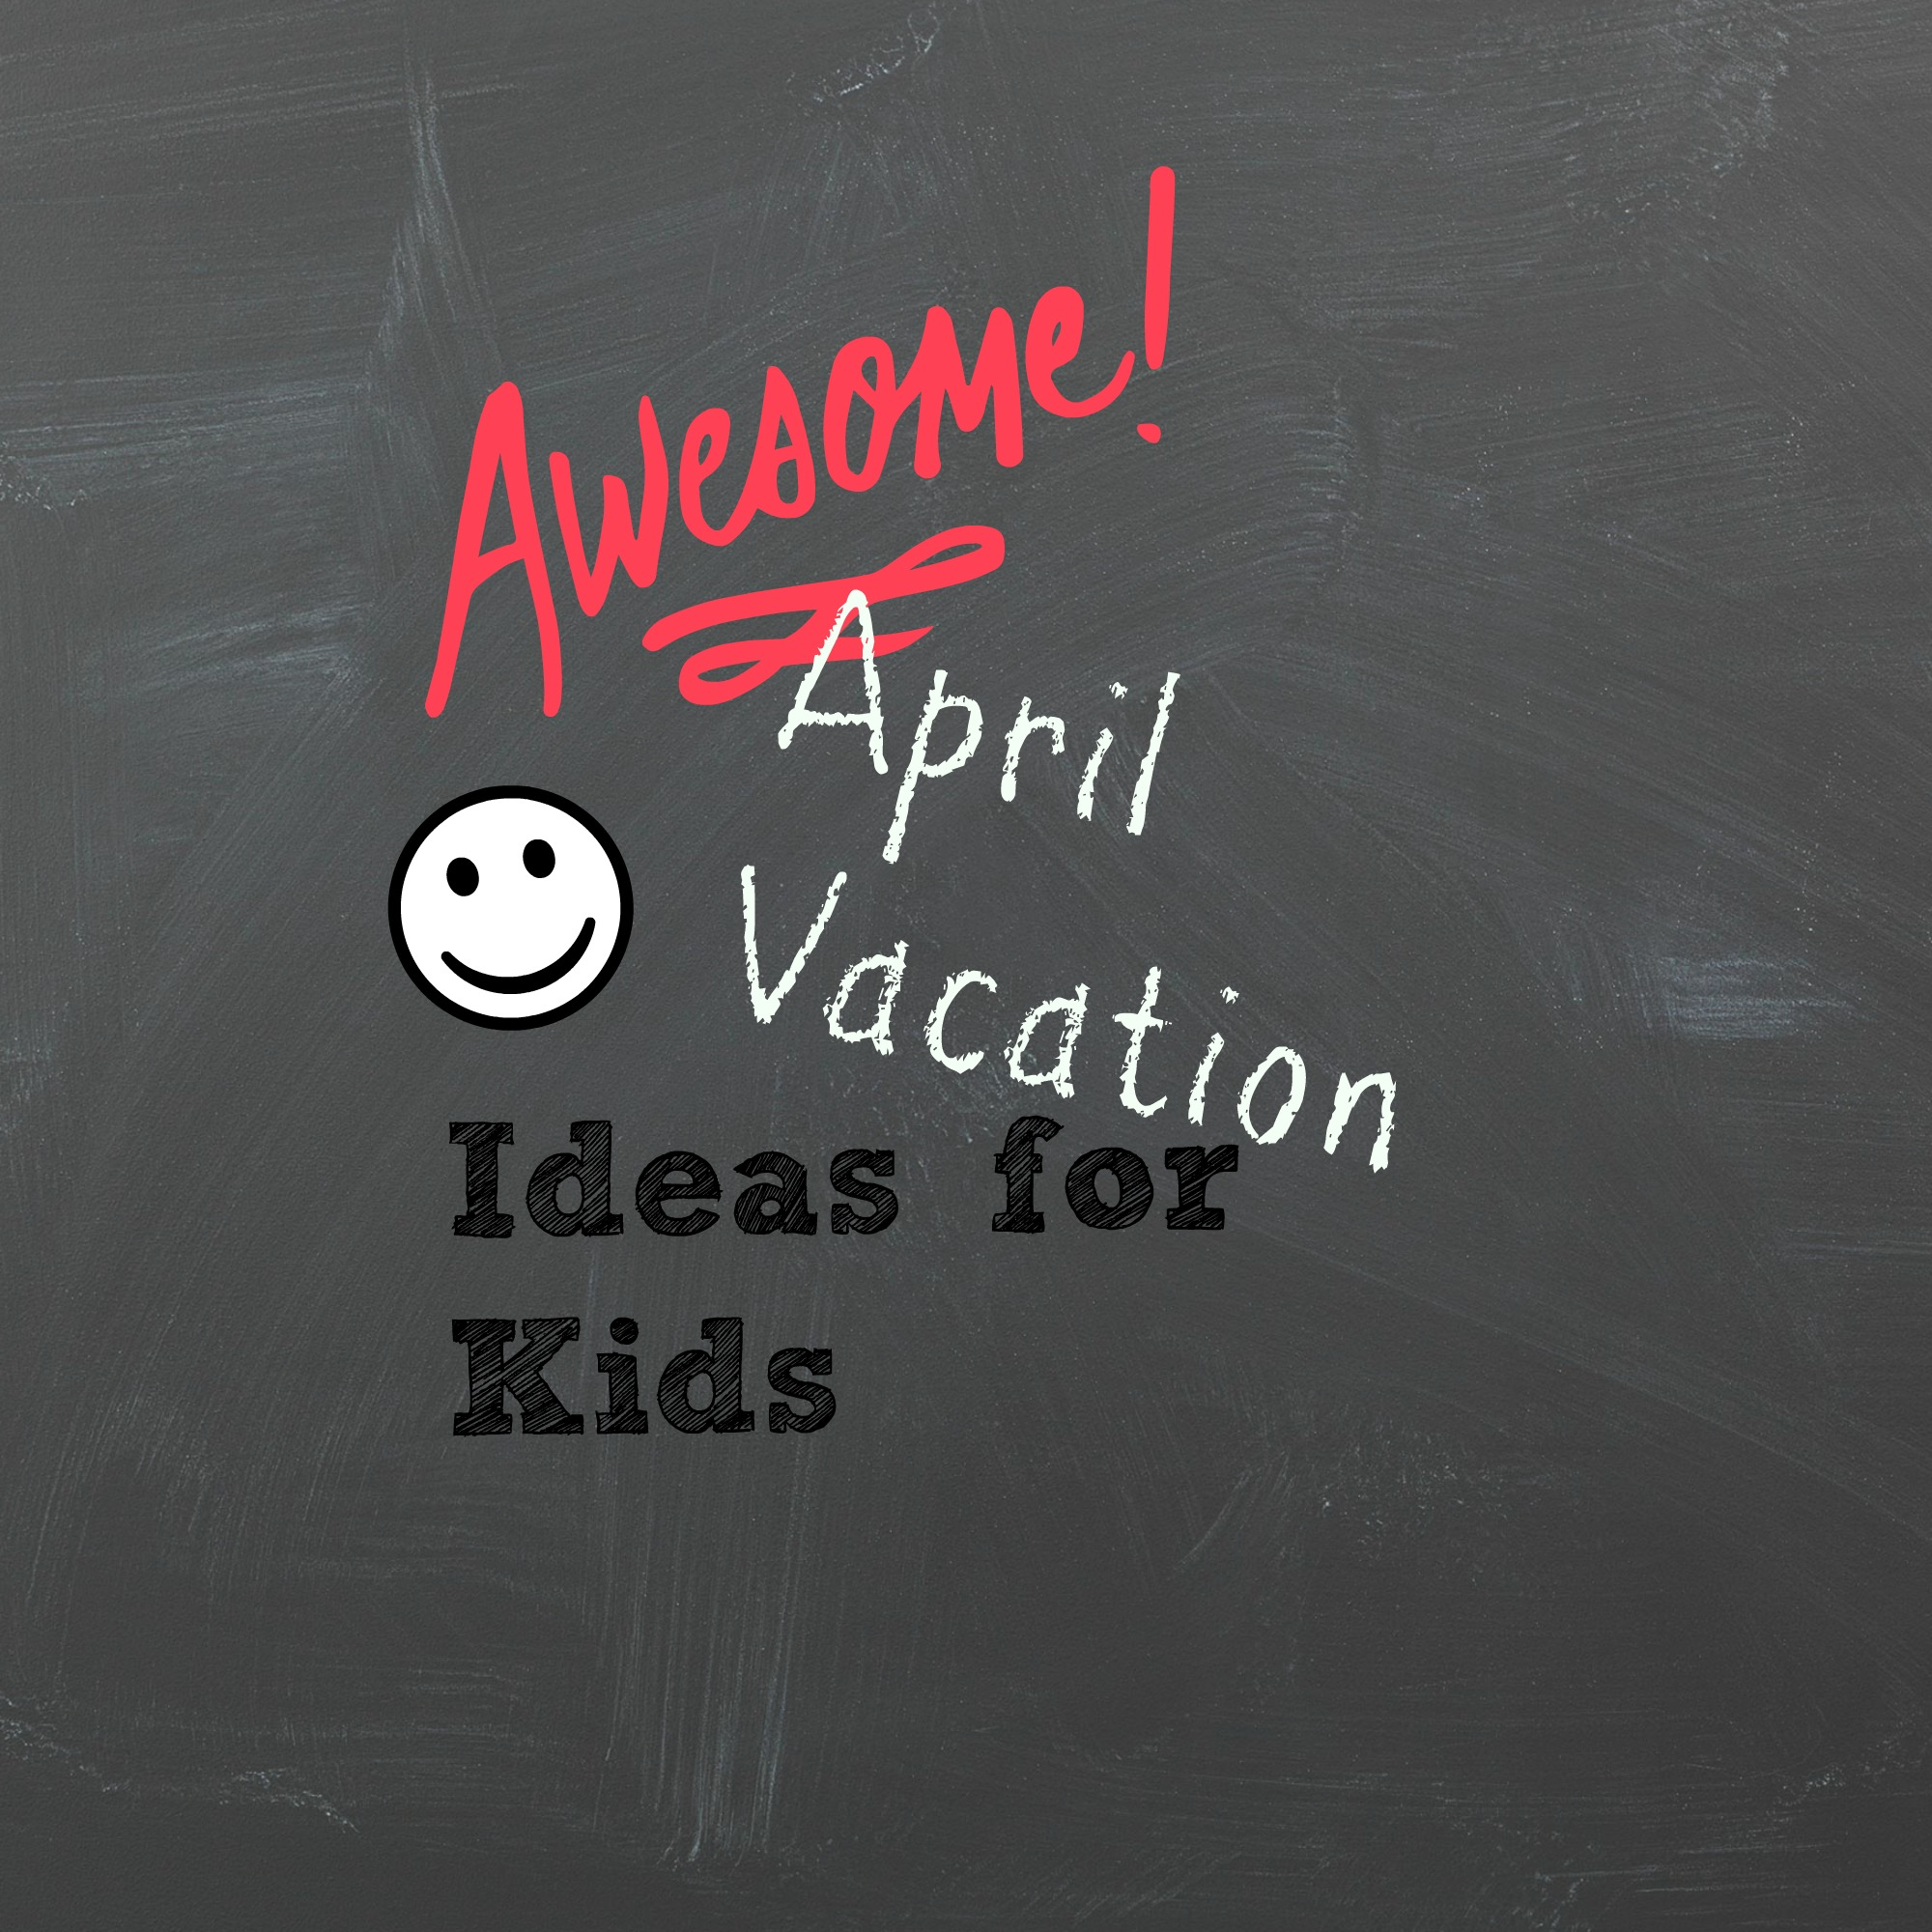 awesome april vacation ideas for kids - boston living on the cheap